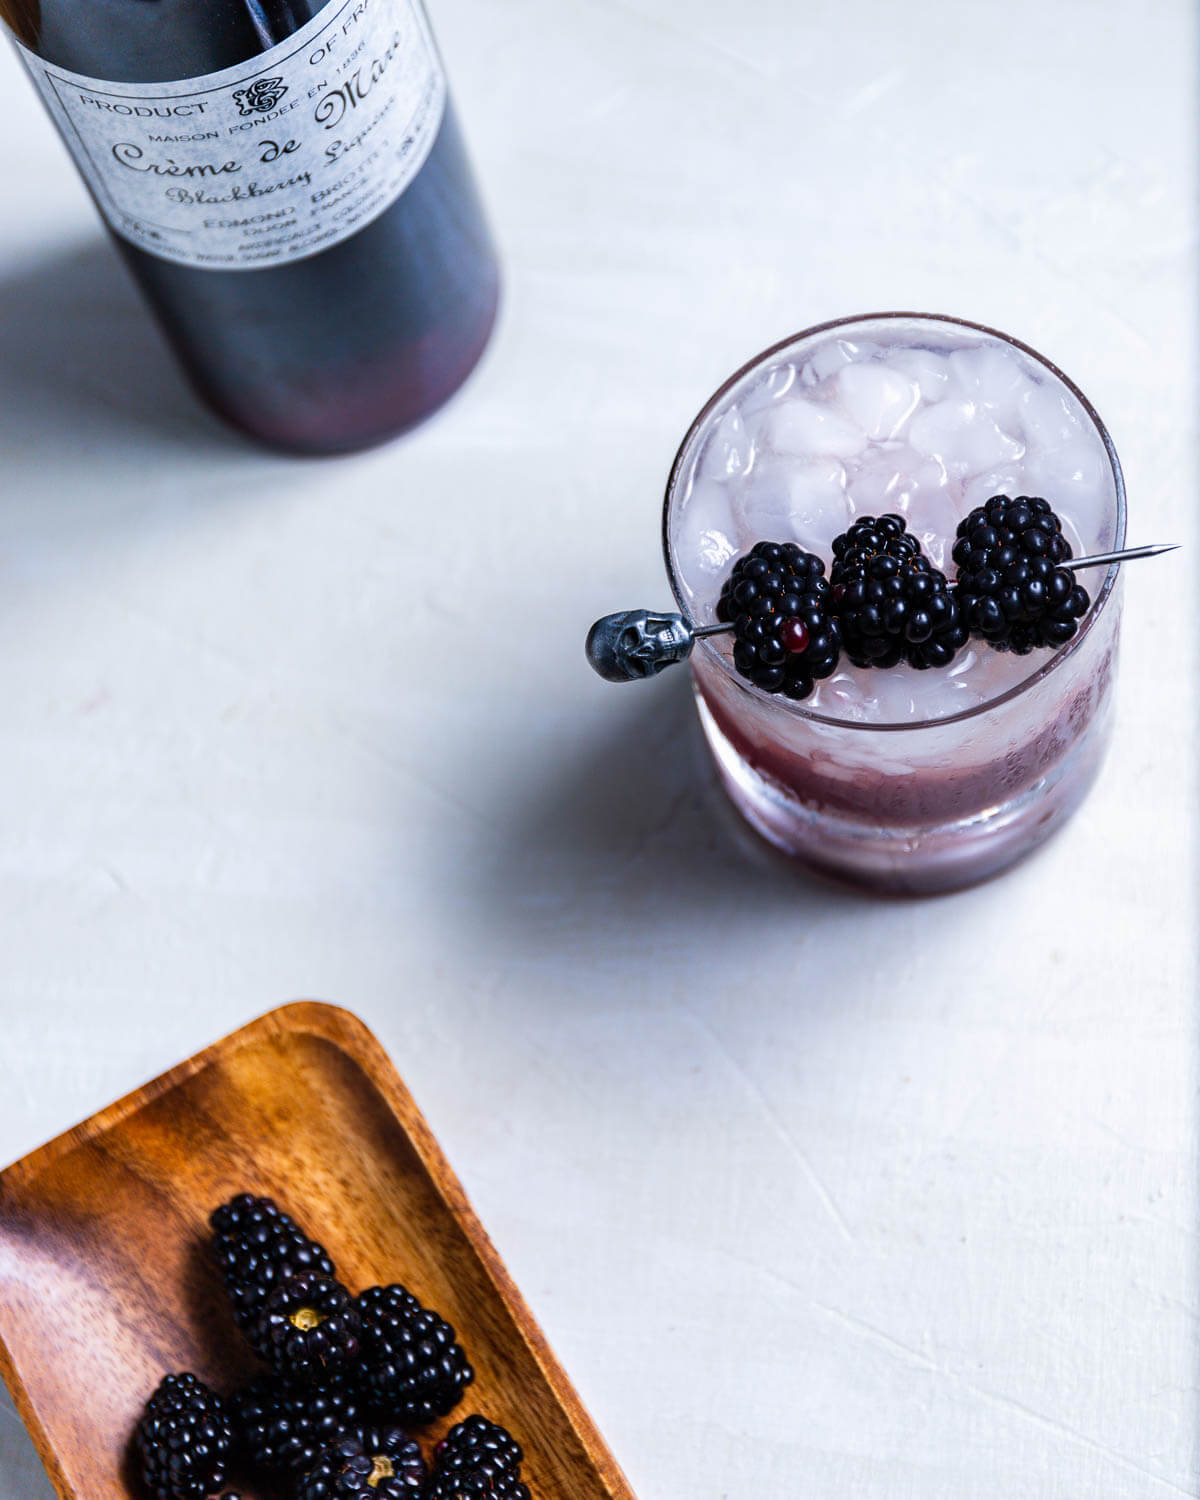 Overhead shot of Blackberry Bramble with Creme de Mure bottle and plate of blackberries.